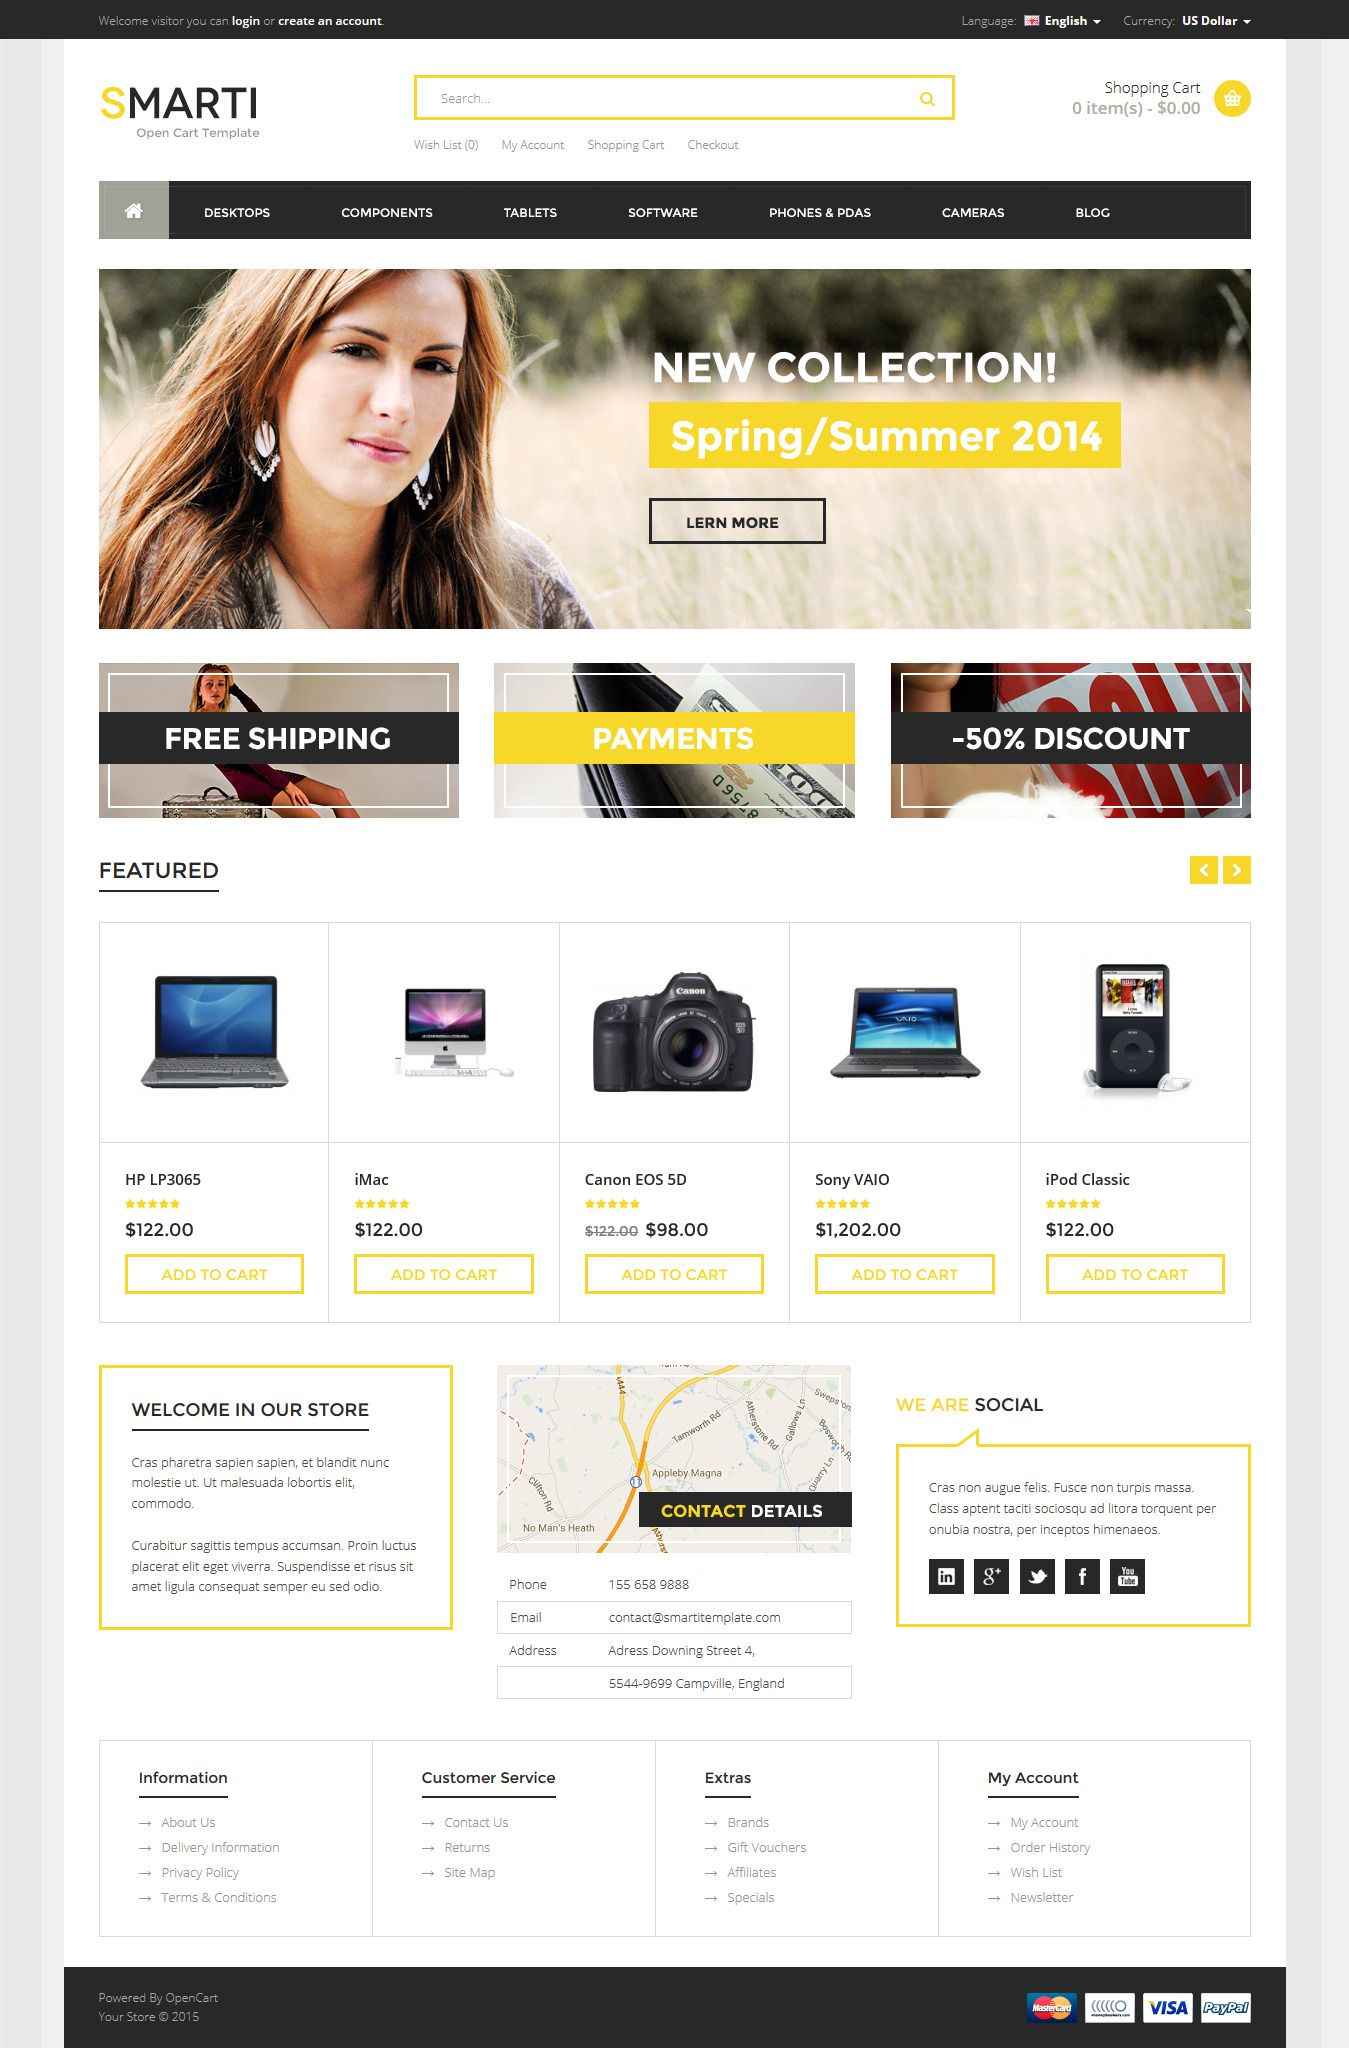 Smarti - Responsive Multipurpose Opencart Theme #cms #opencart Live Preview & Download: http://themeforest.net/item/smarti-responsive-multipurpose-opencart-theme/10618844?ref=ksioks